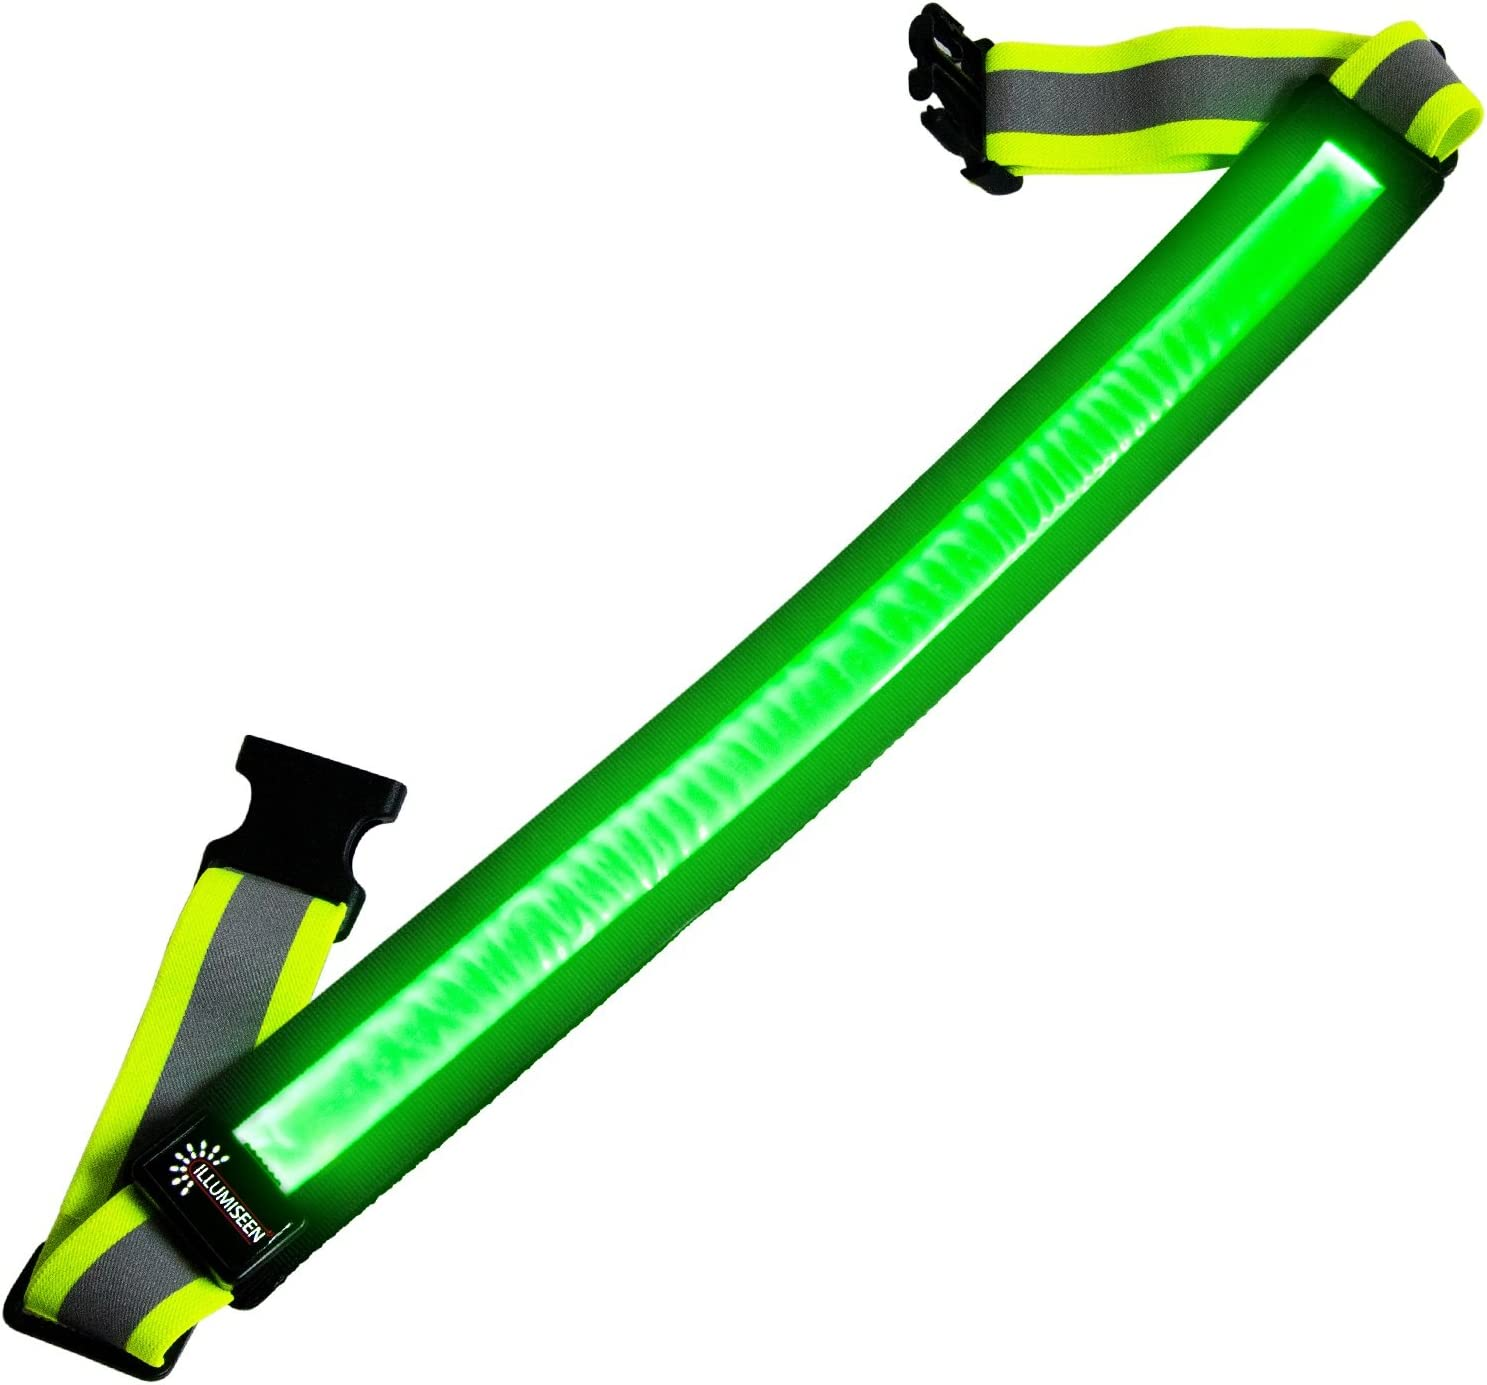 LED Reflective Belt - USB Rechargeable - High Visibility Gear for Running, Walking & Cycling - Fits Women, Men & Kids - Fully Adjustable & Lightweight - Safer Than a Reflective Vest - Green, Red, Blue : Sports & Outdoors